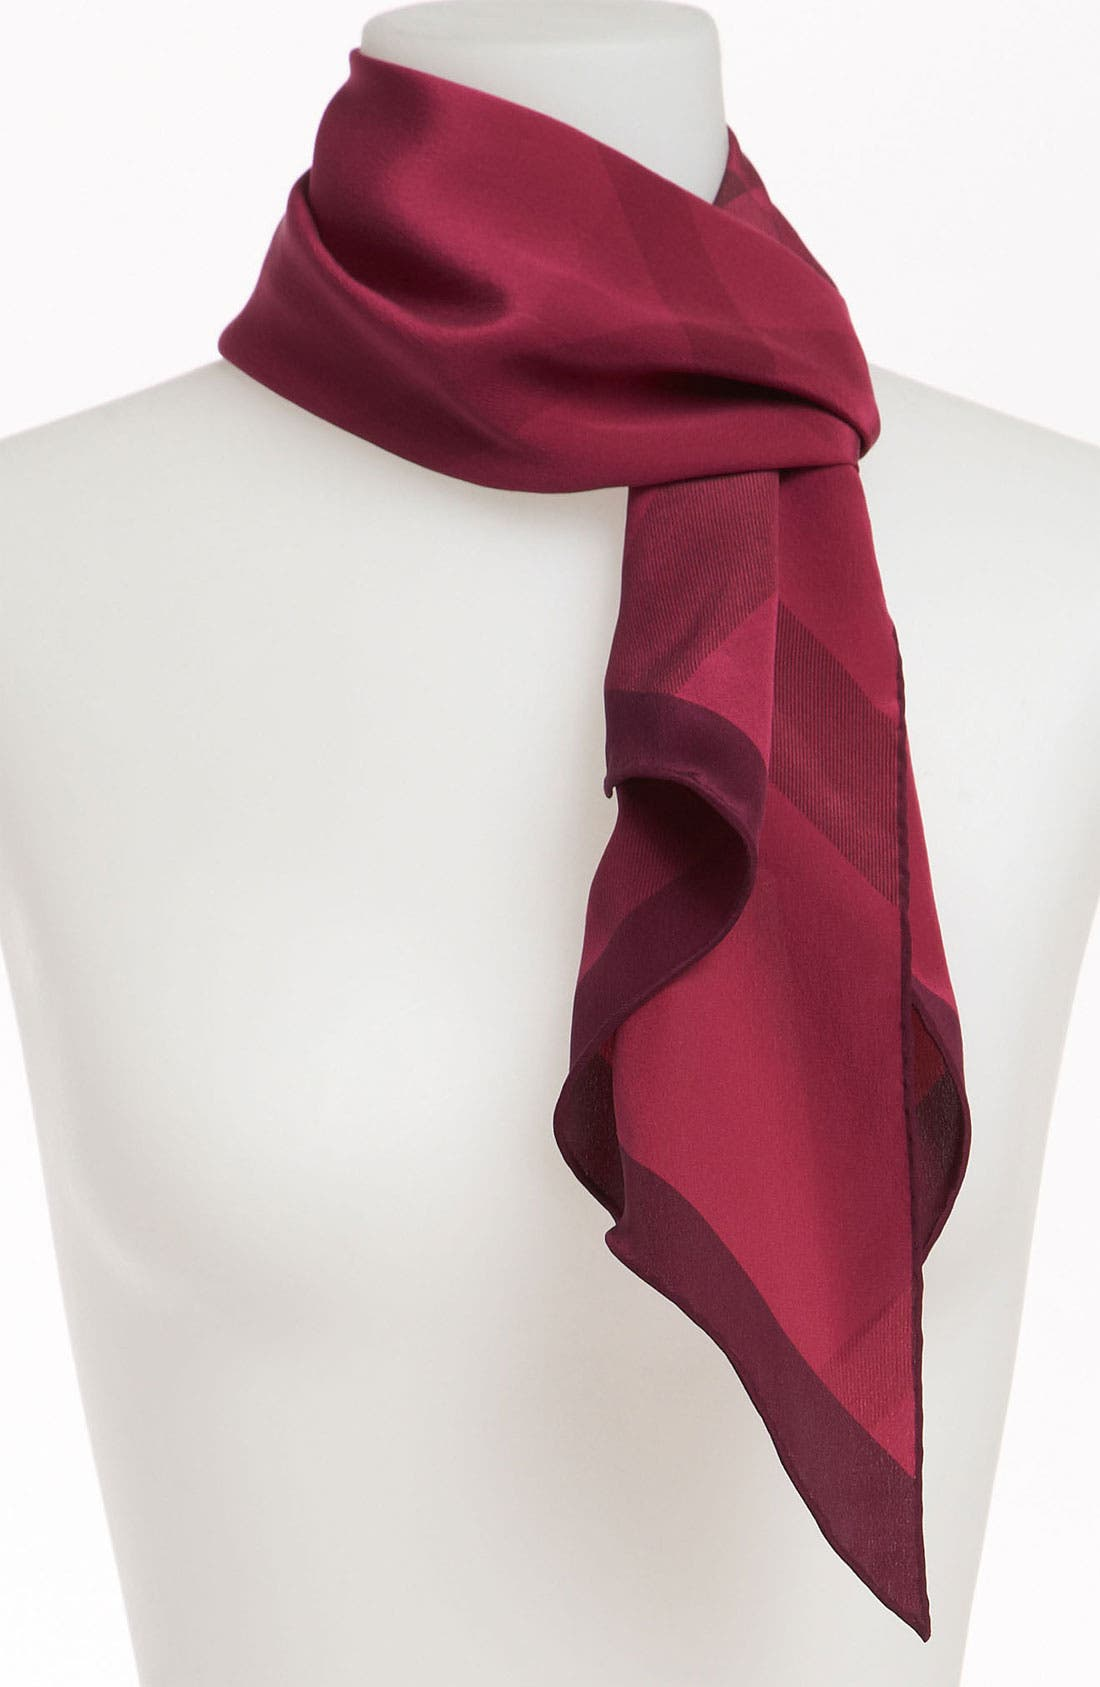 Alternate Image 1 Selected - Burberry Giant Check Oblong Silk Scarf